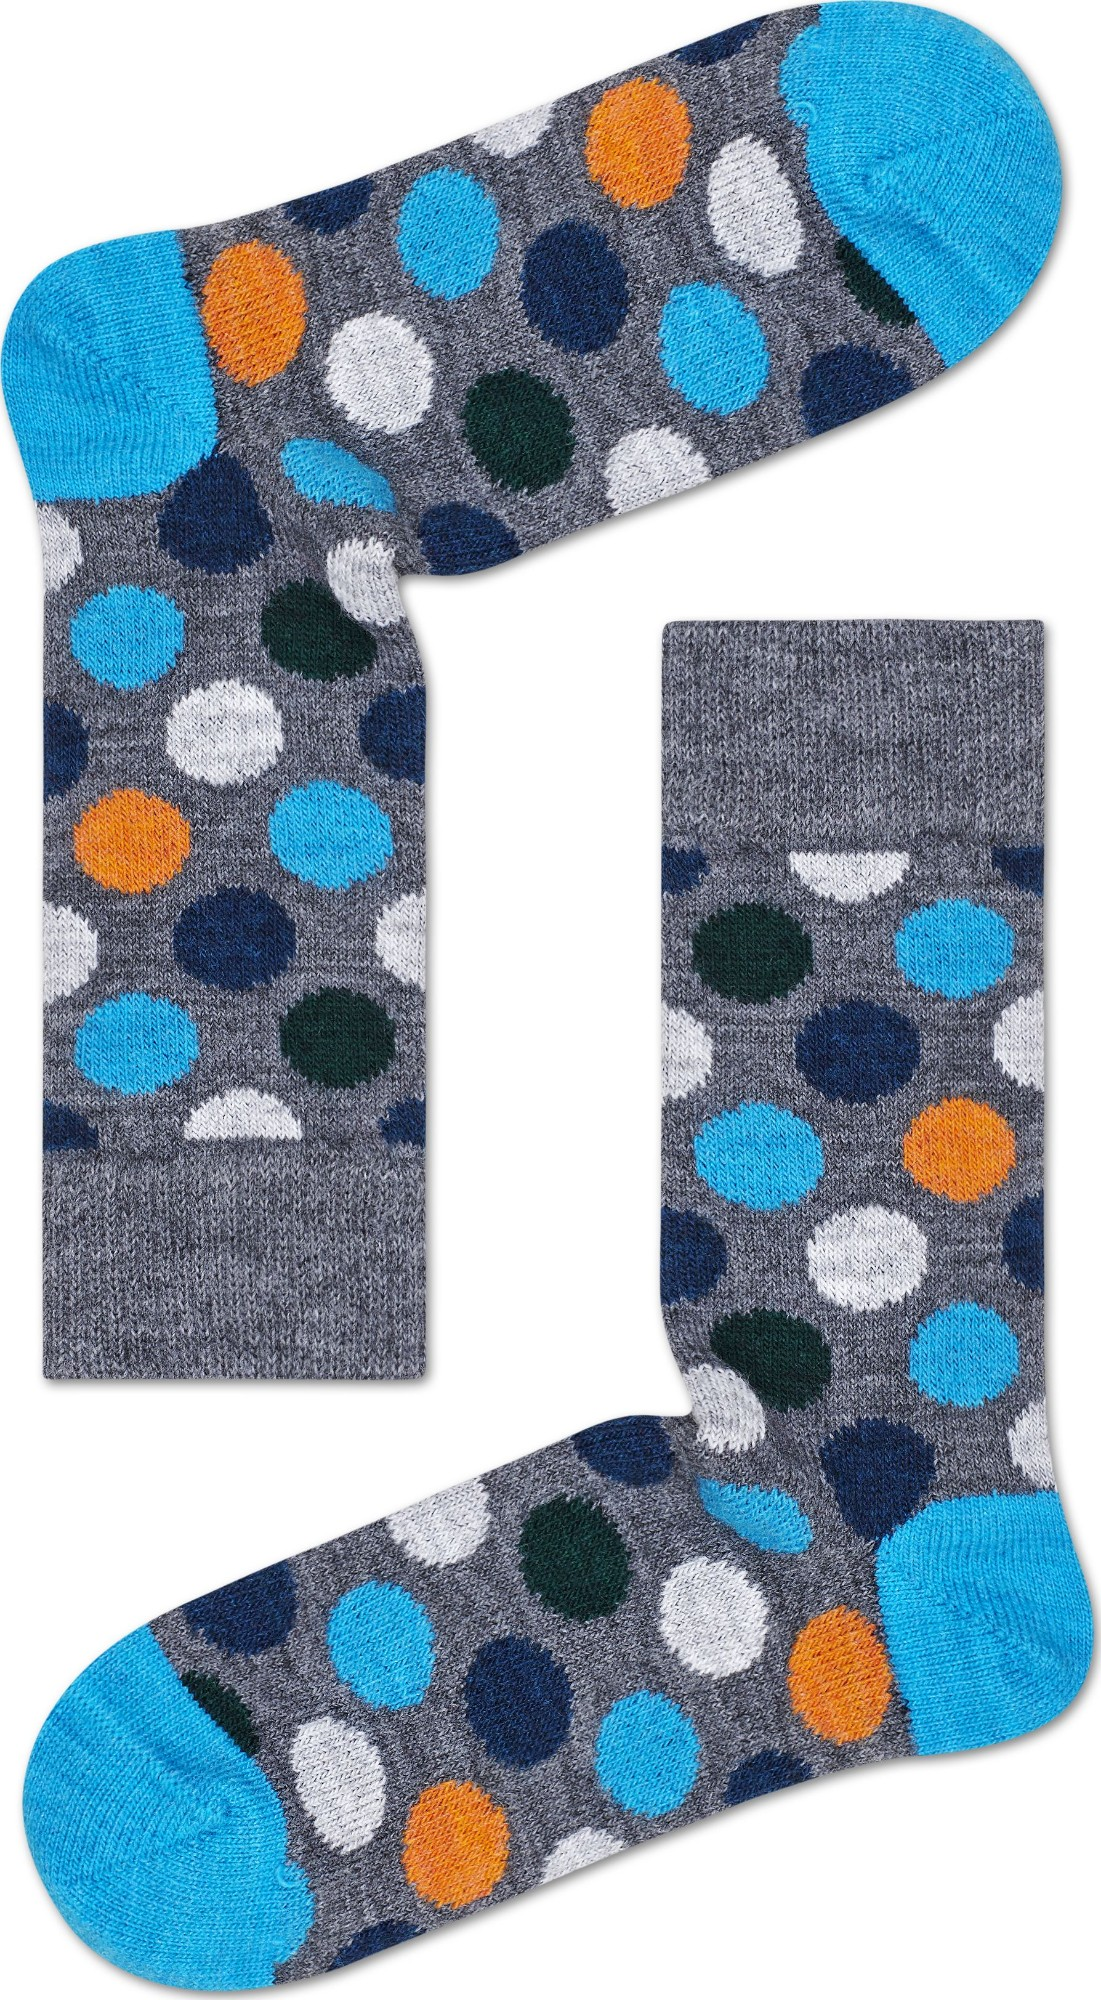 Happy Socks Wool Big Dot Block Multi 9700 36-40